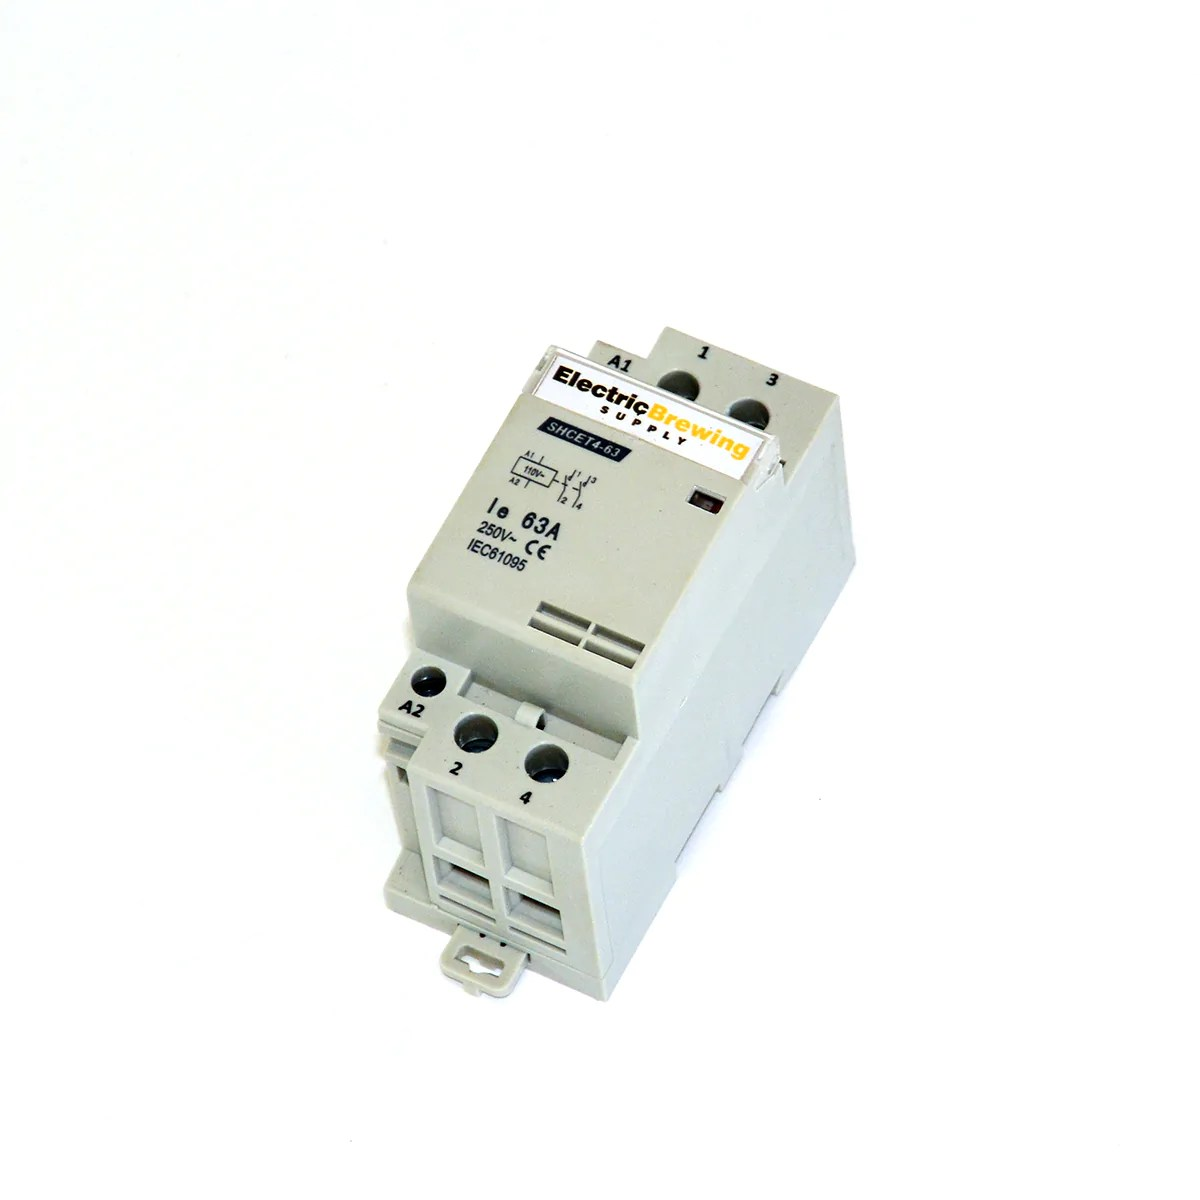 2 pole 63a 110v coil din rail contactor [ 1200 x 1200 Pixel ]